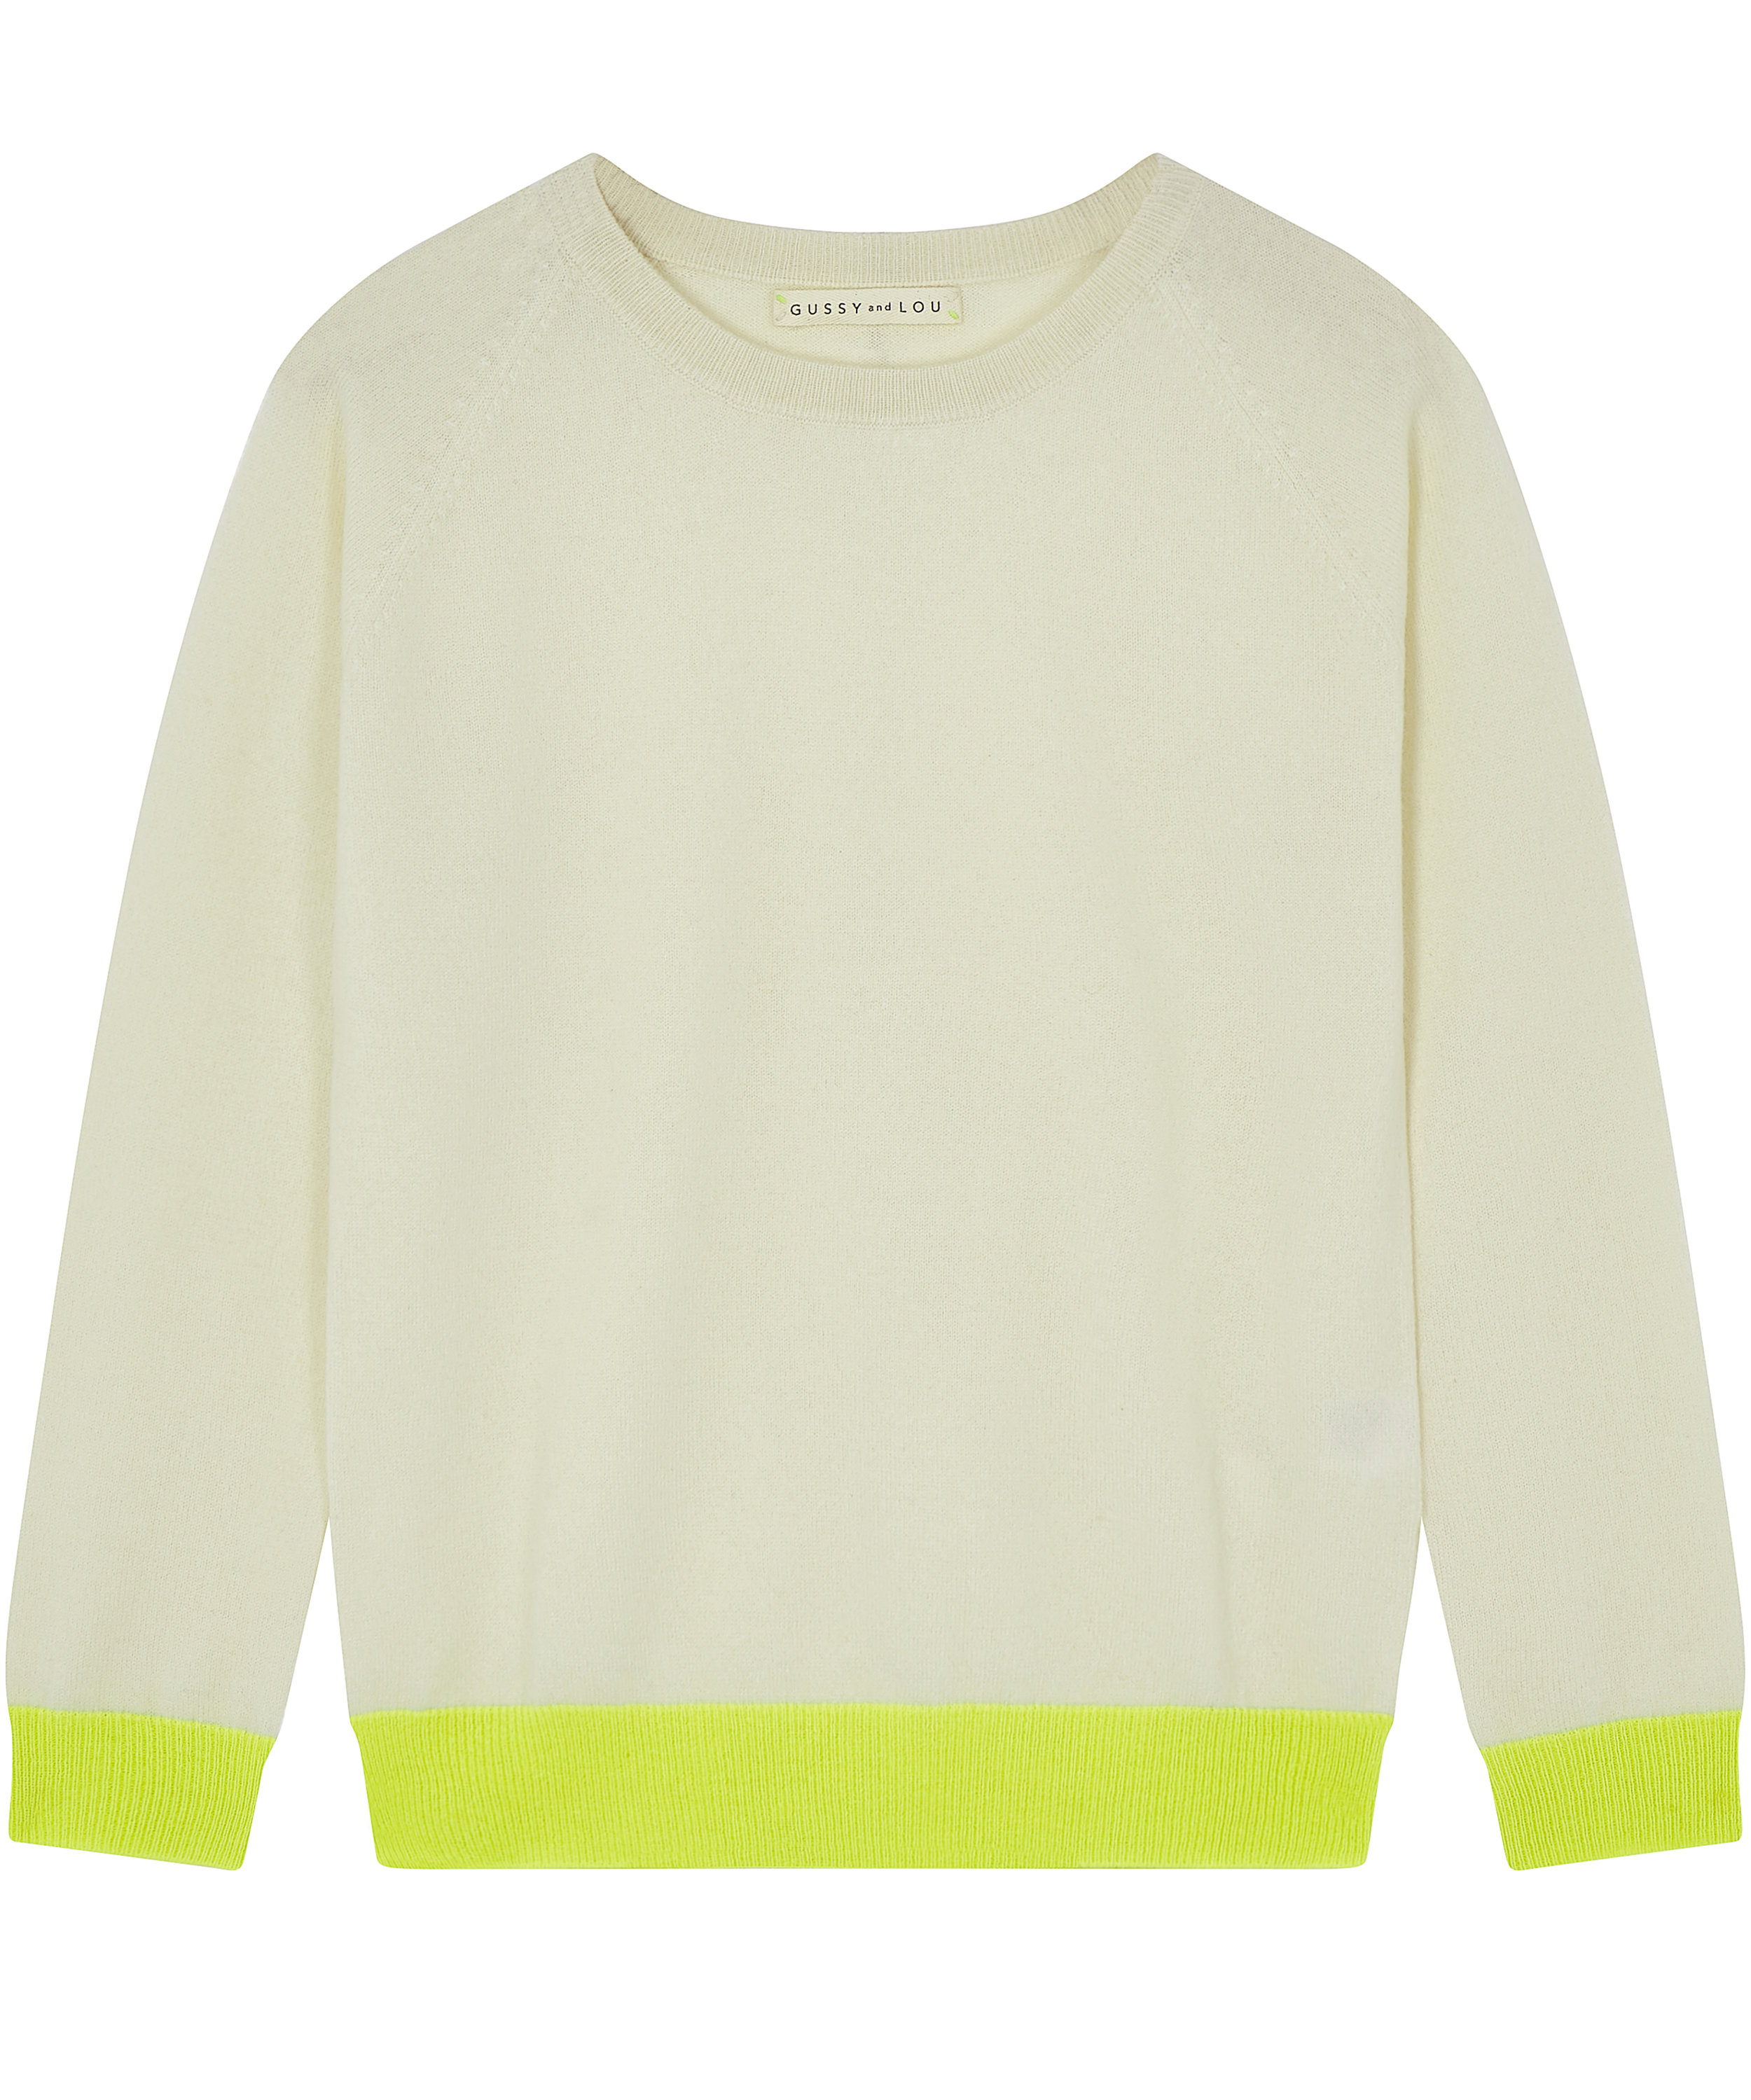 Ladies Cream and Neon Yellow Cashmere Jumper — Gussy and Lou